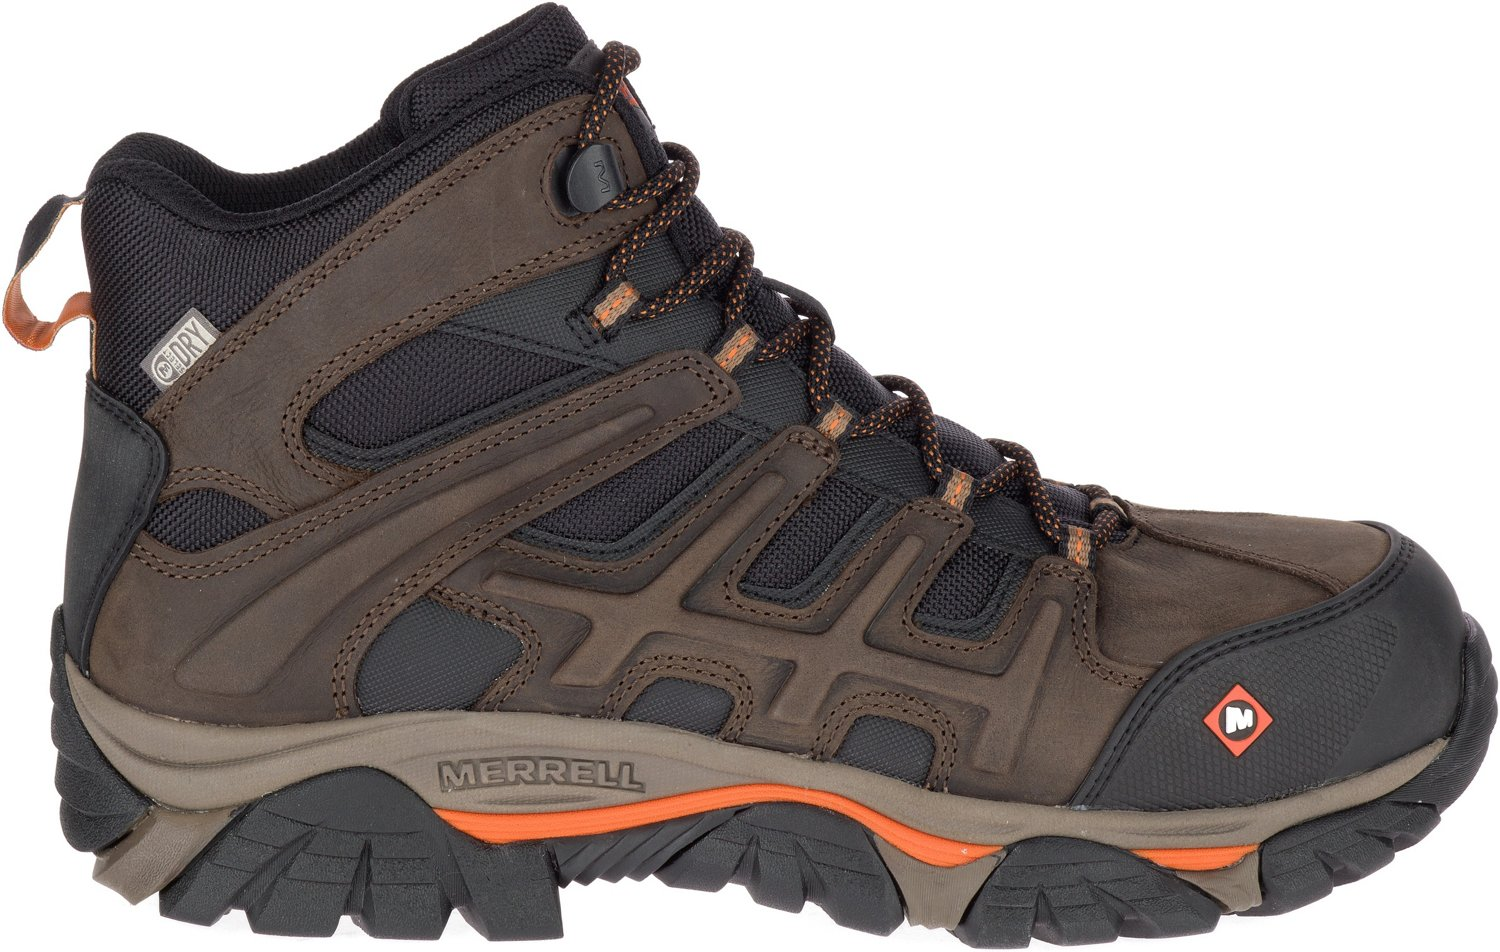 b65f86d4 Merrell Men's MOAB 2 Peak EH Composite Toe Lace Up Work Shoes | Academy